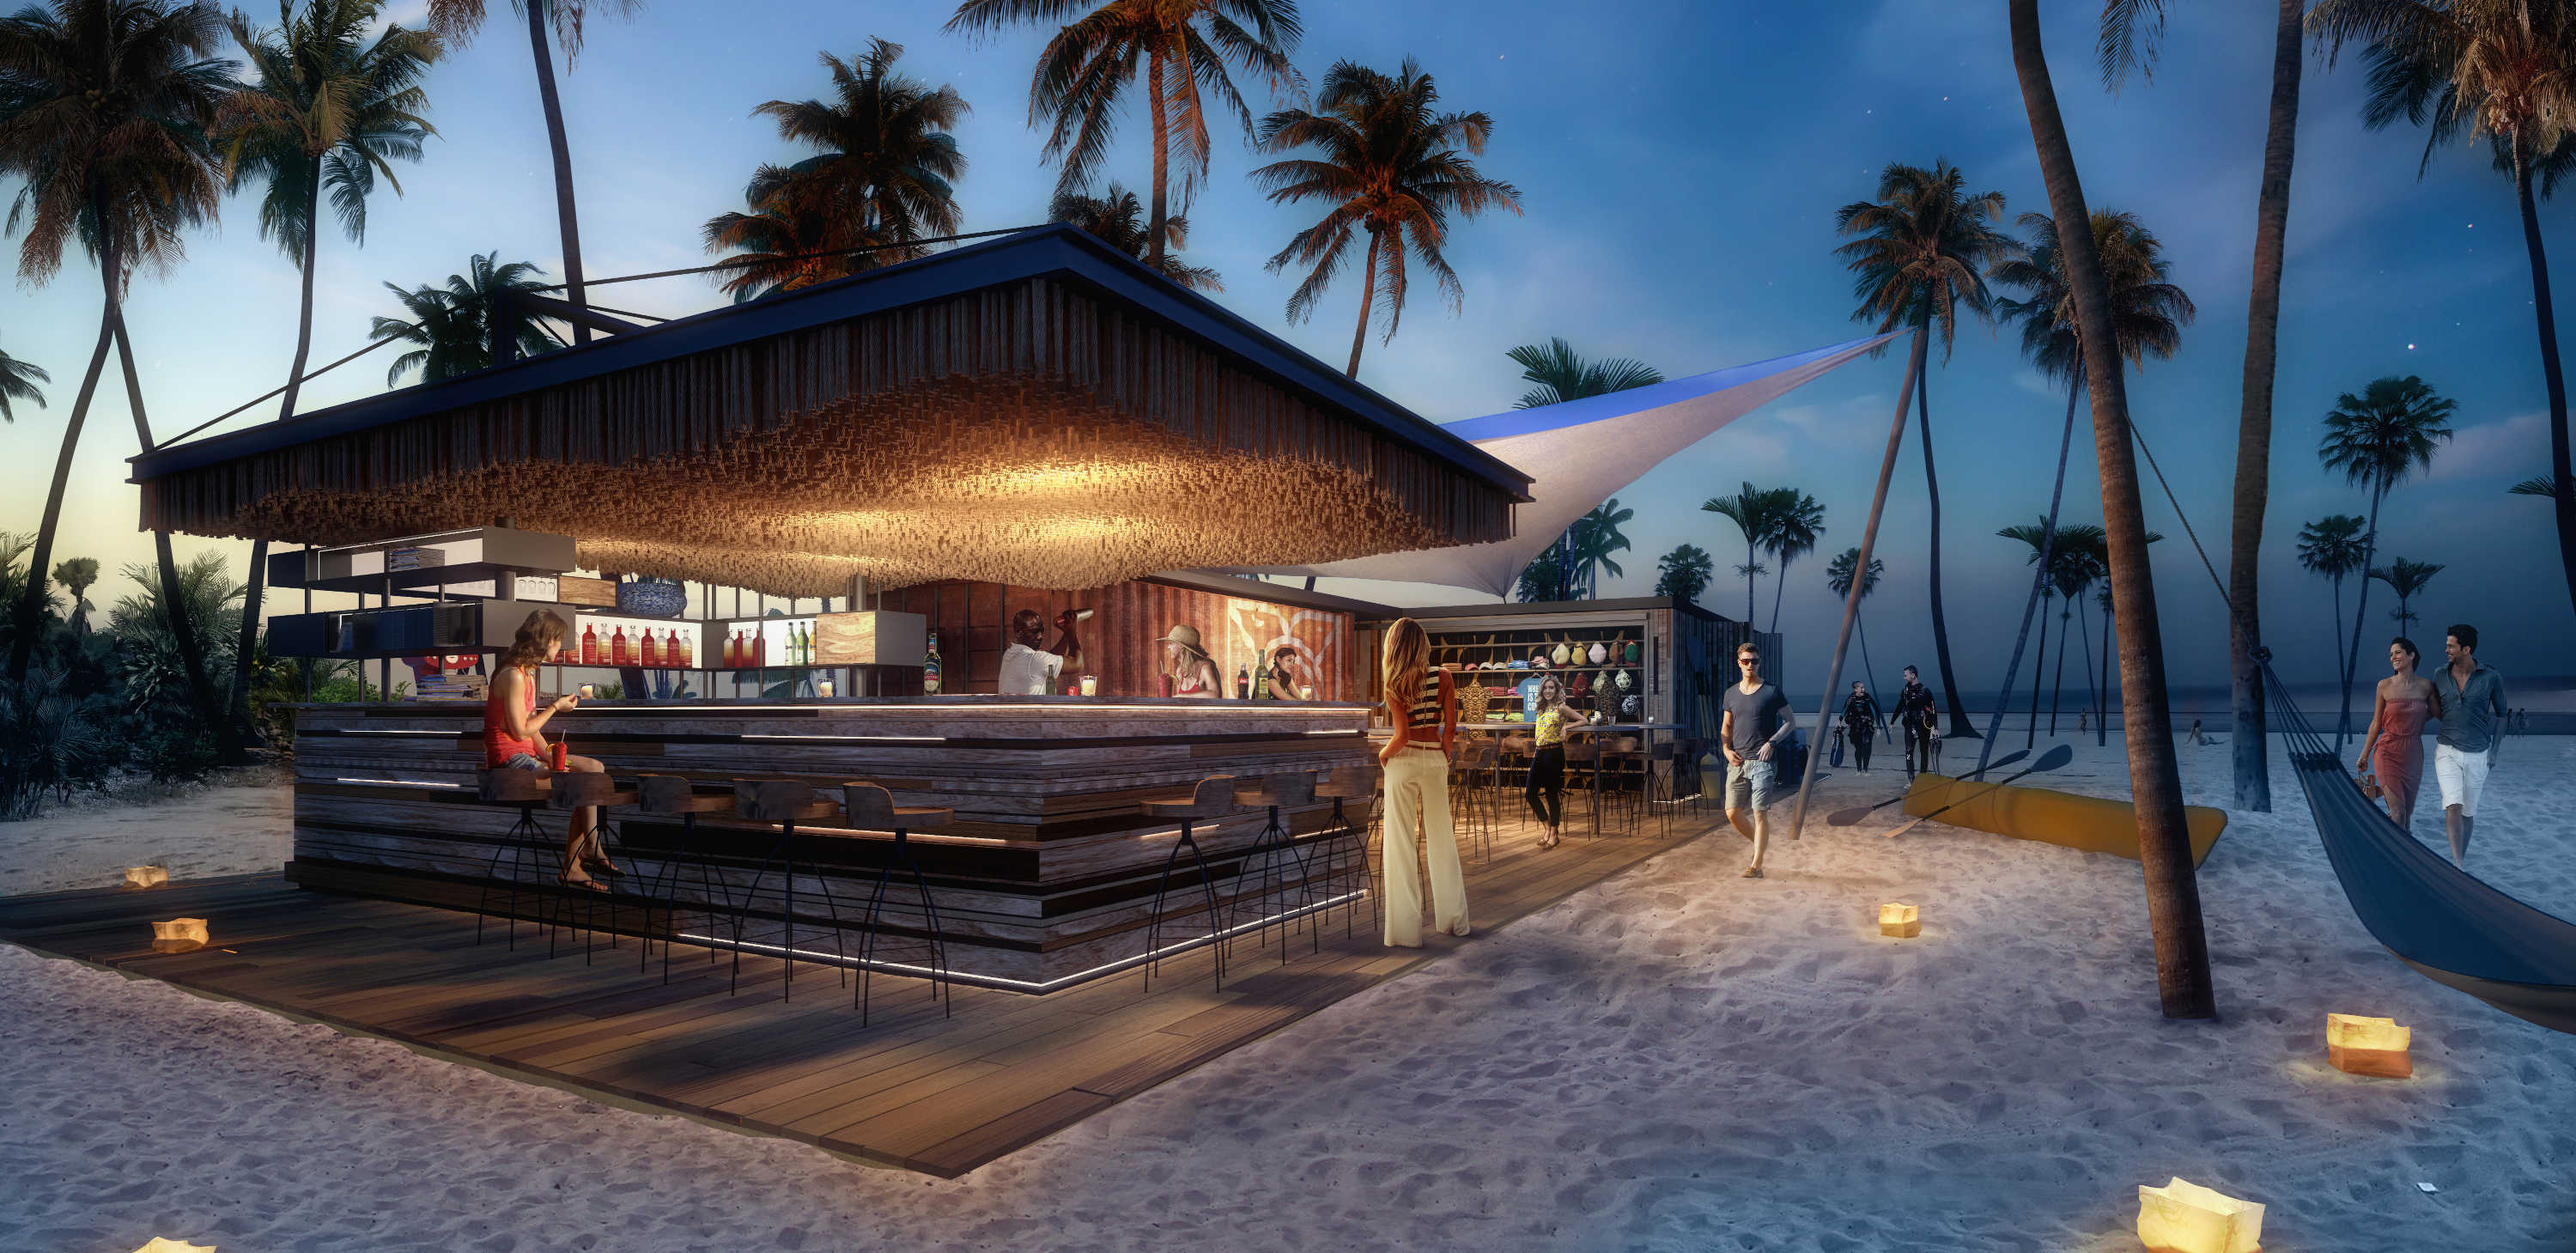 Zuri beach bar